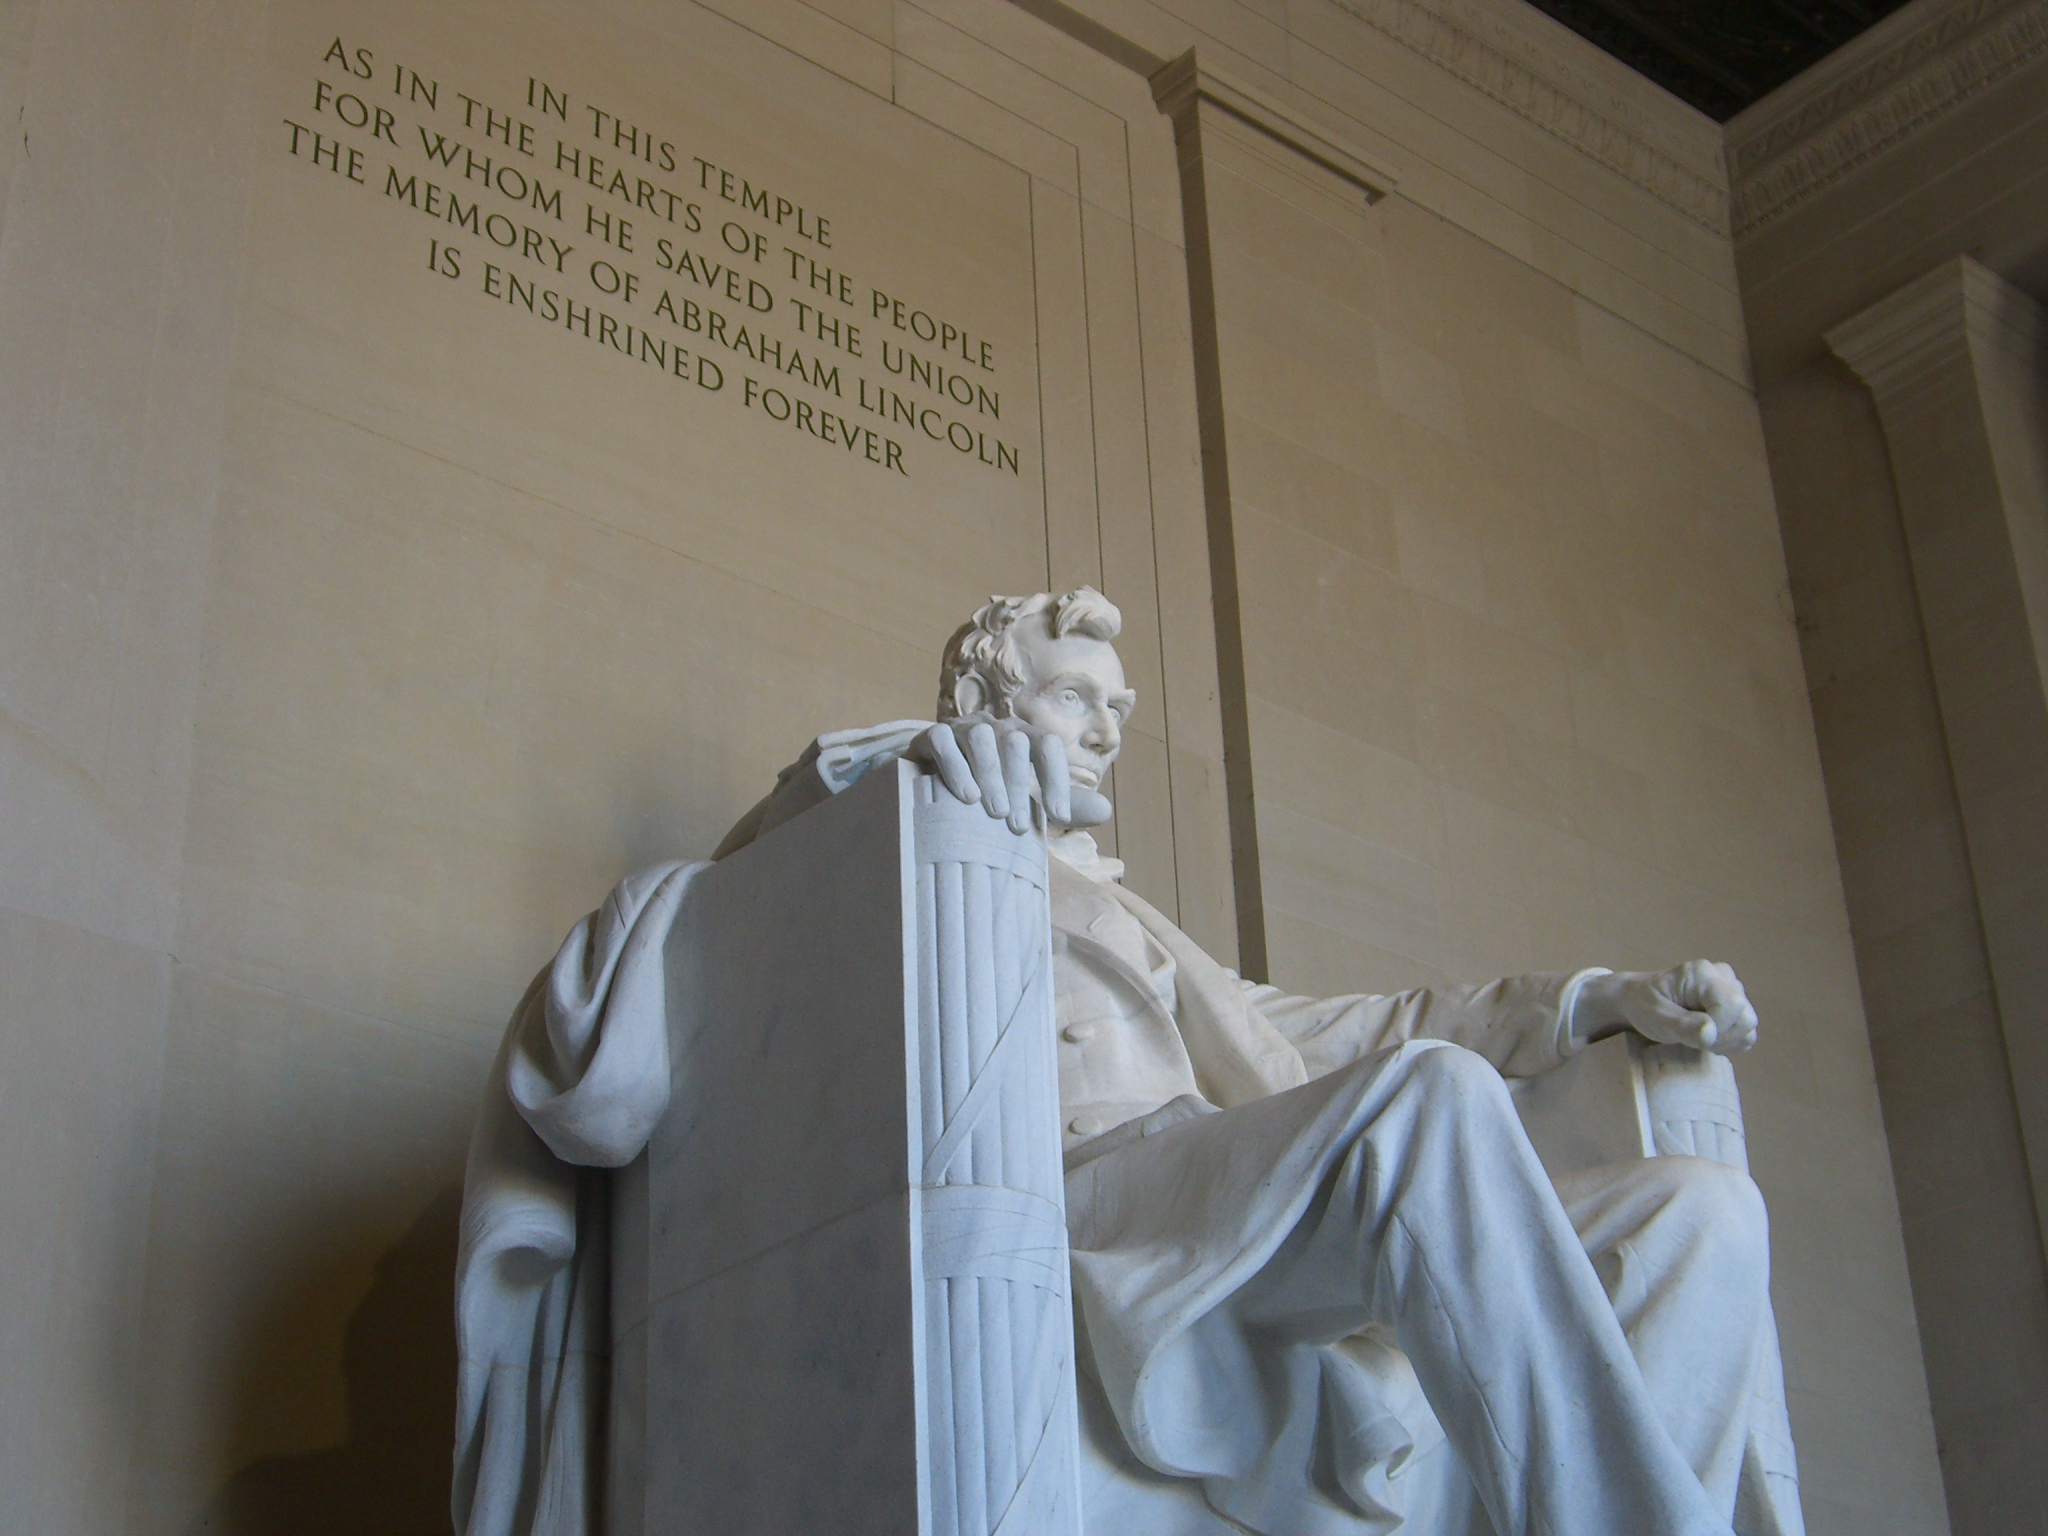 file:abraham lincoln memorial, washington dc - wikimedia commons